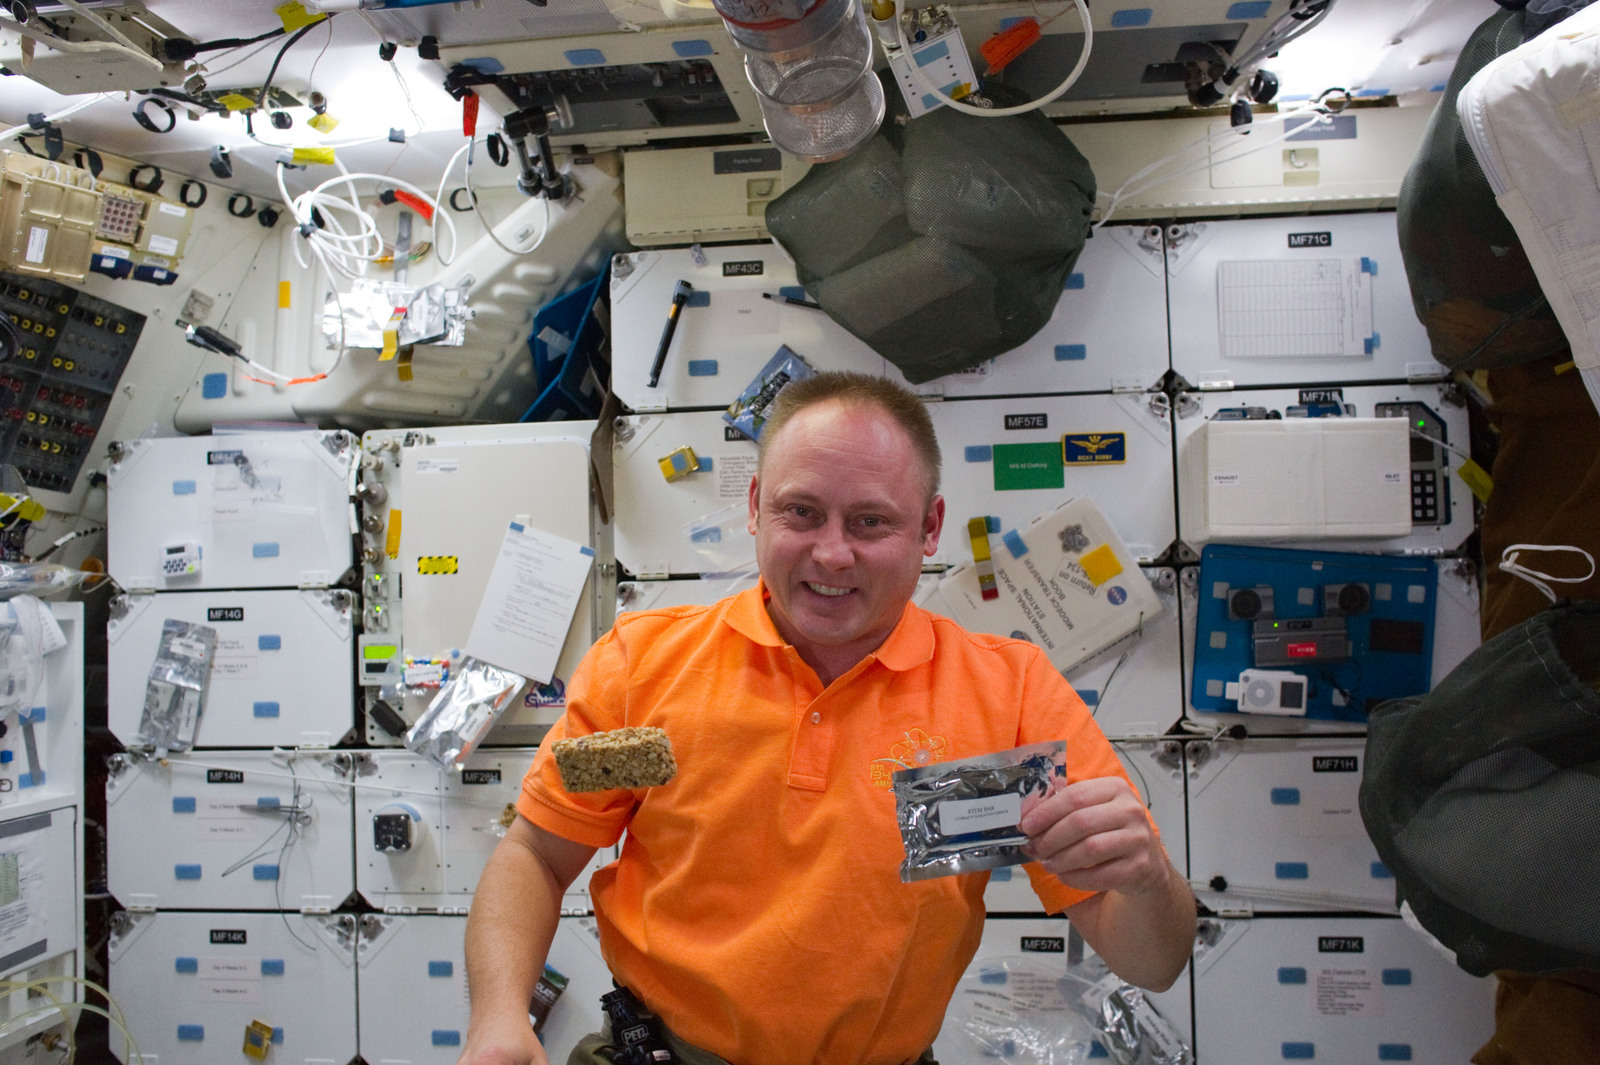 S134E009702 - STS-134 - STS-134 MS Fincke poses for a photo with a STEM Bar